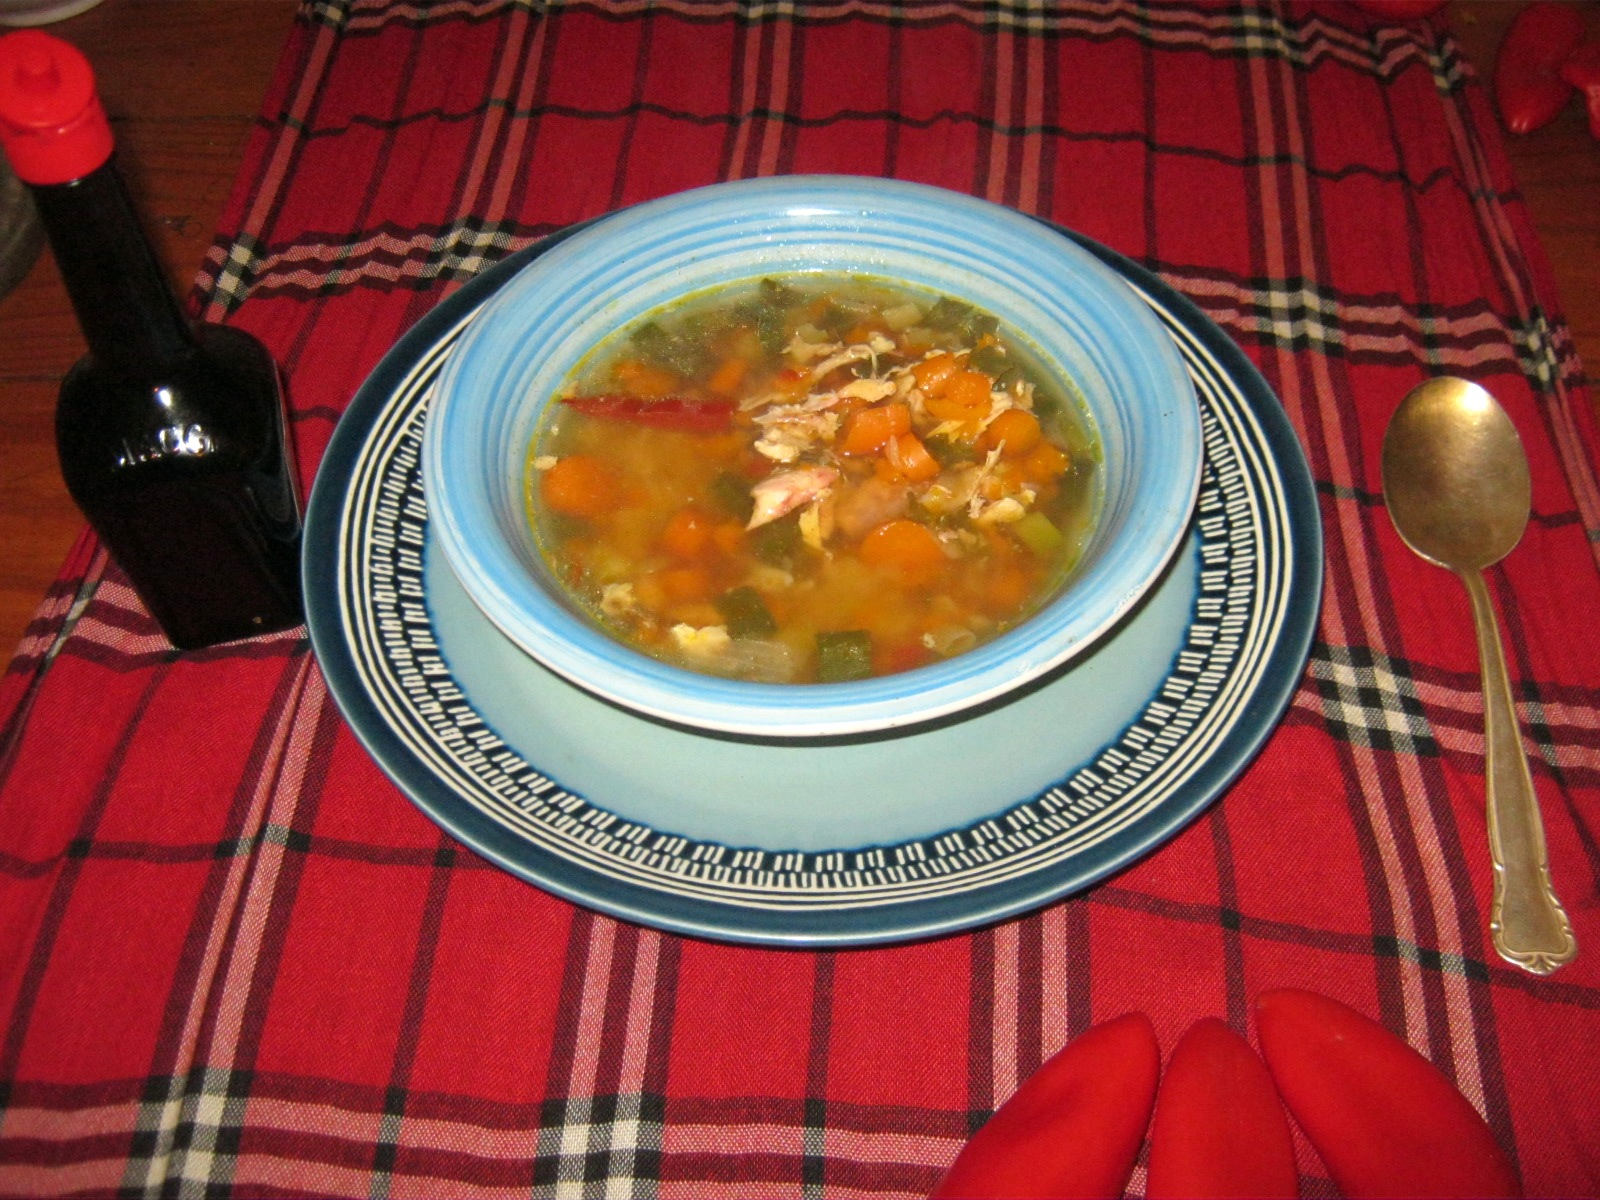 This tasty and spicy chicken soup is one of my favorites.